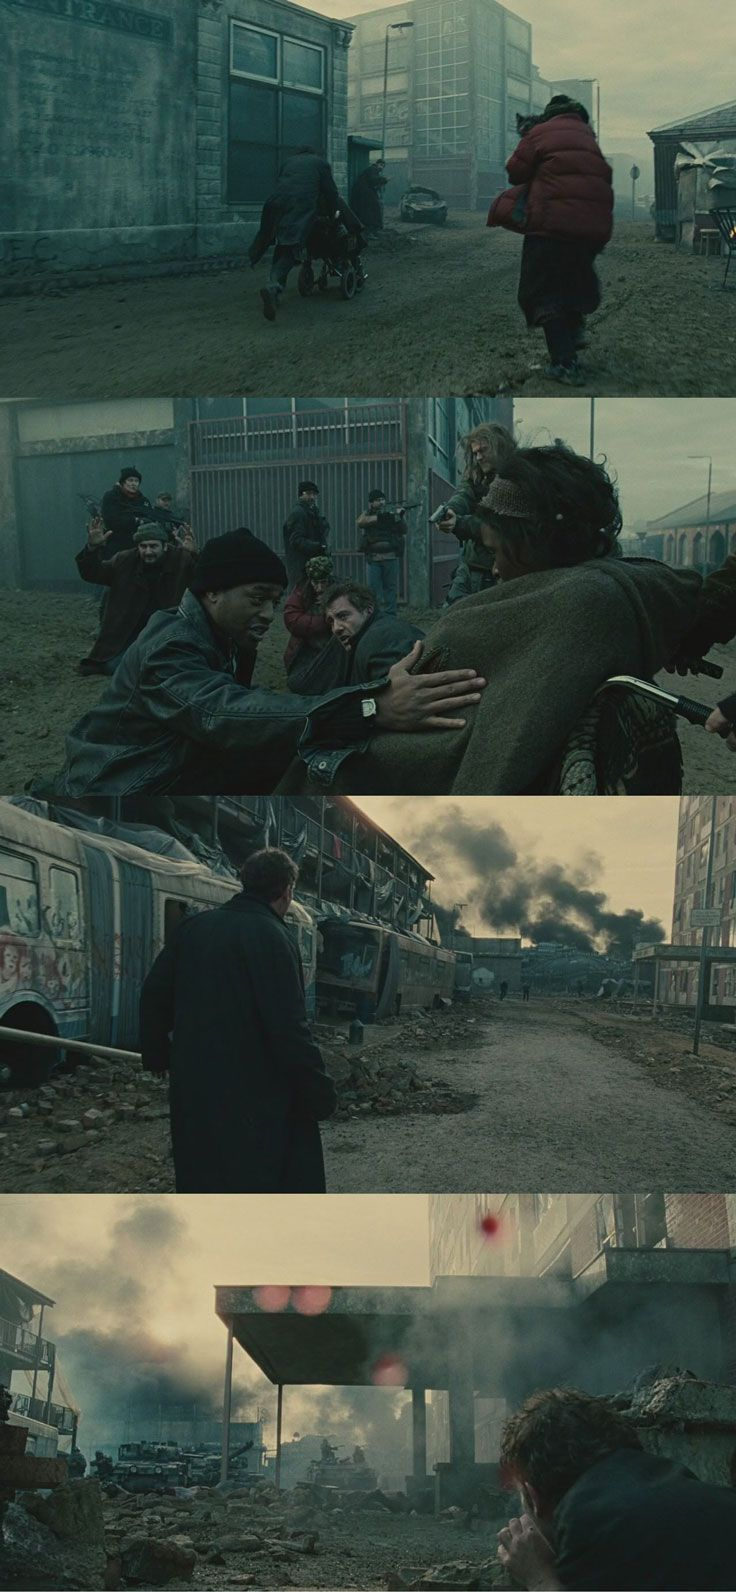 One of the best single-shot sequences in movie history: the 6-minute Uprising scene in Children of Men (2006). Cinematography by Emmanuel Lubezki.